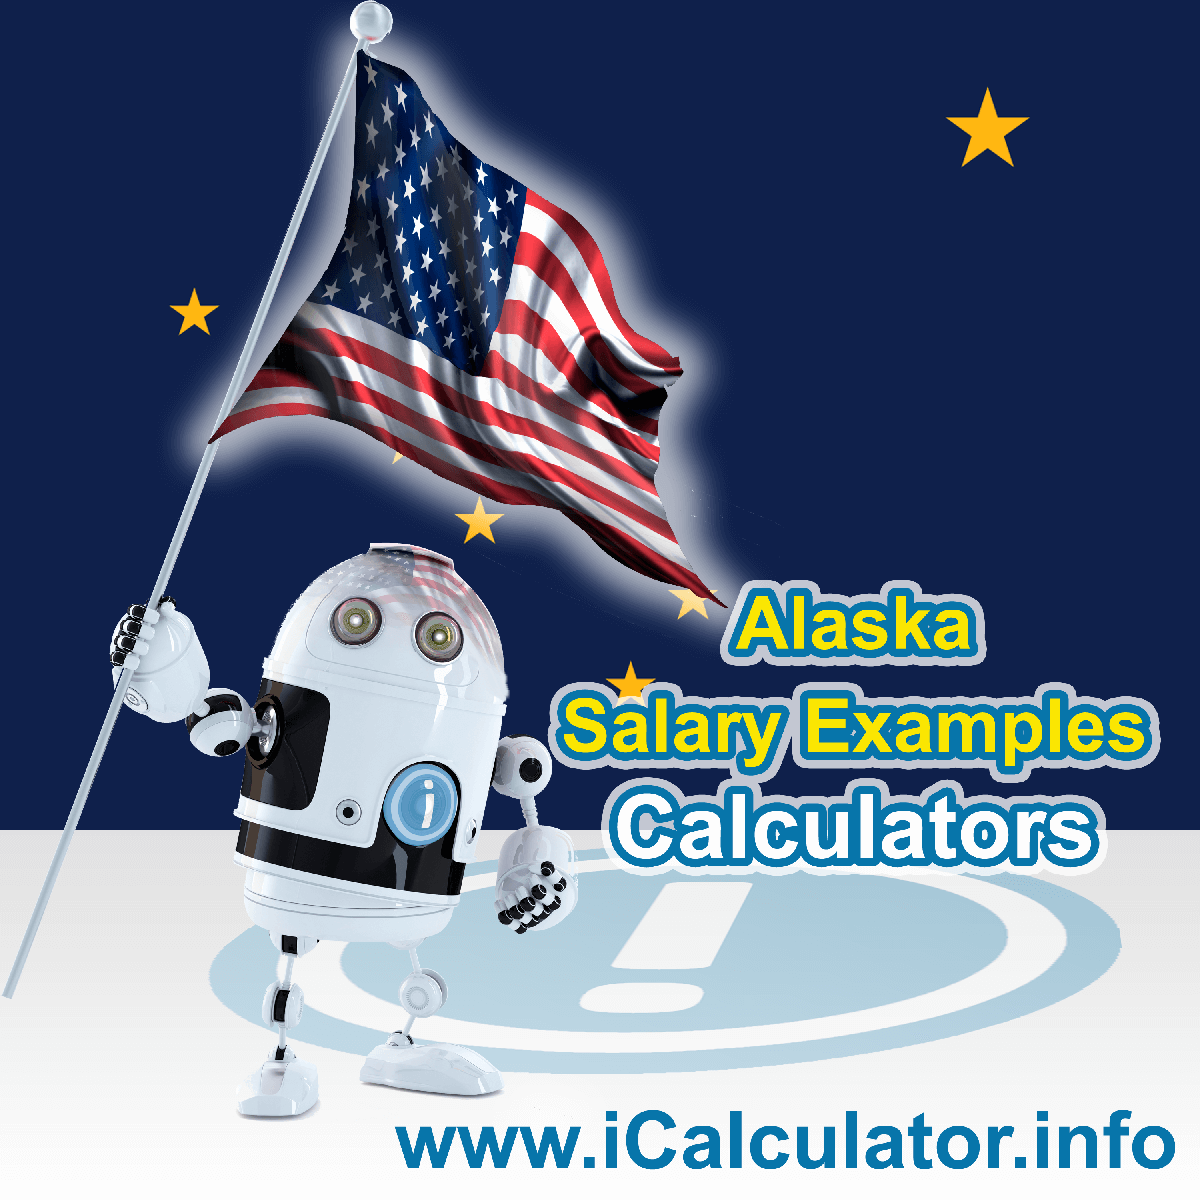 Alaska Salary Example for $180,000.00 in 2020 | iCalculator | $180,000.00 salary example for employee and employer paying Alaska State tincome taxes. Detailed salary after tax calculation including Alaska State Tax, Federal State Tax, Medicare Deductions, Social Security, Capital Gains and other income tax and salary deductions complete with supporting Alaska state tax tables